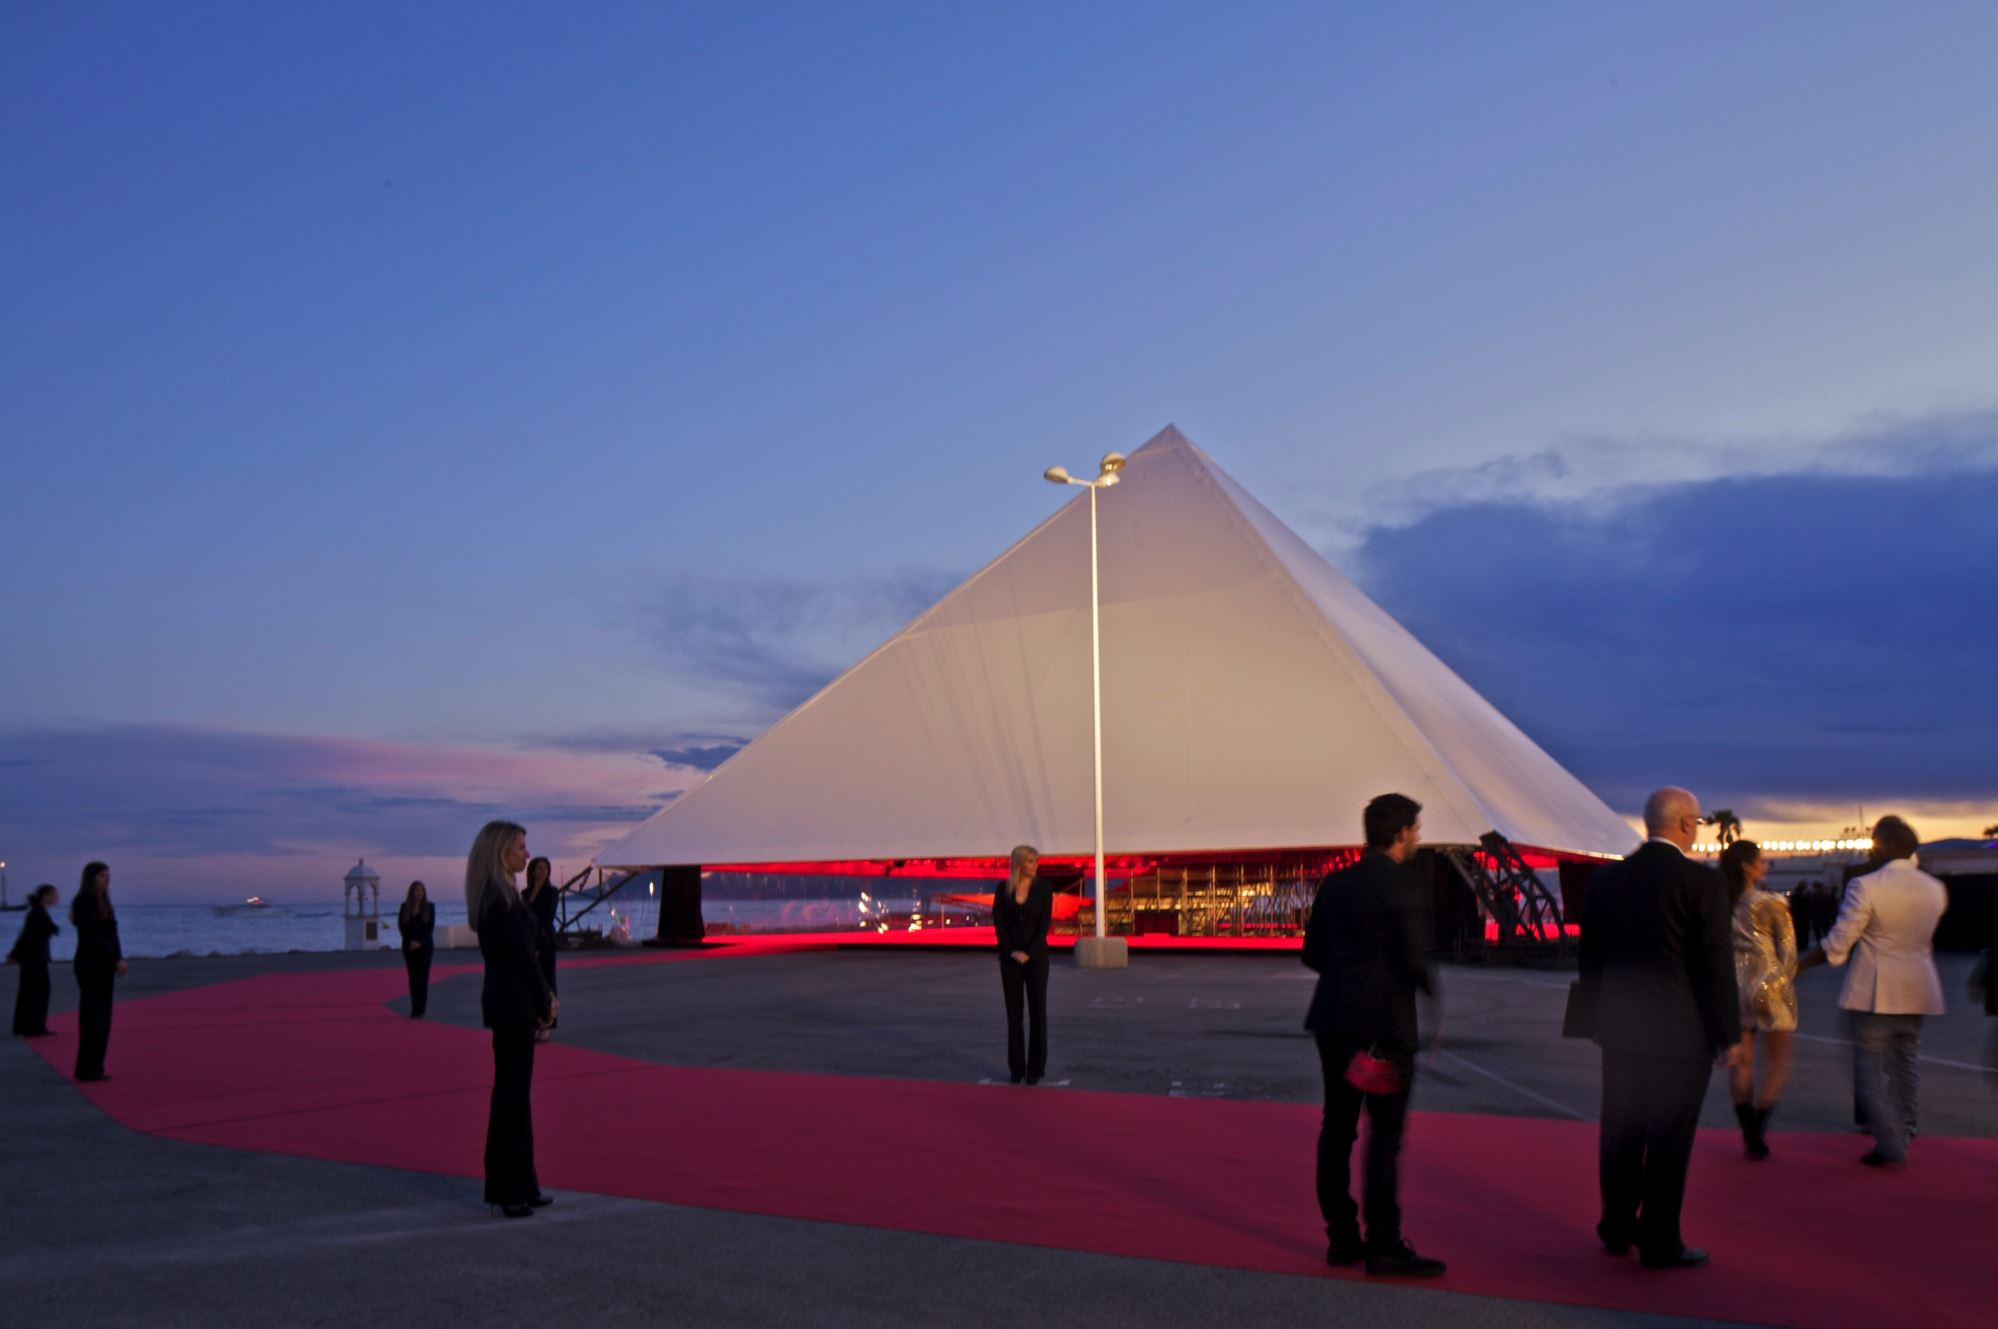 In 2012 West commissioned global architects OMA to design a temporary pavilion for the Cannes Film Festival. Image courtesy of OMA